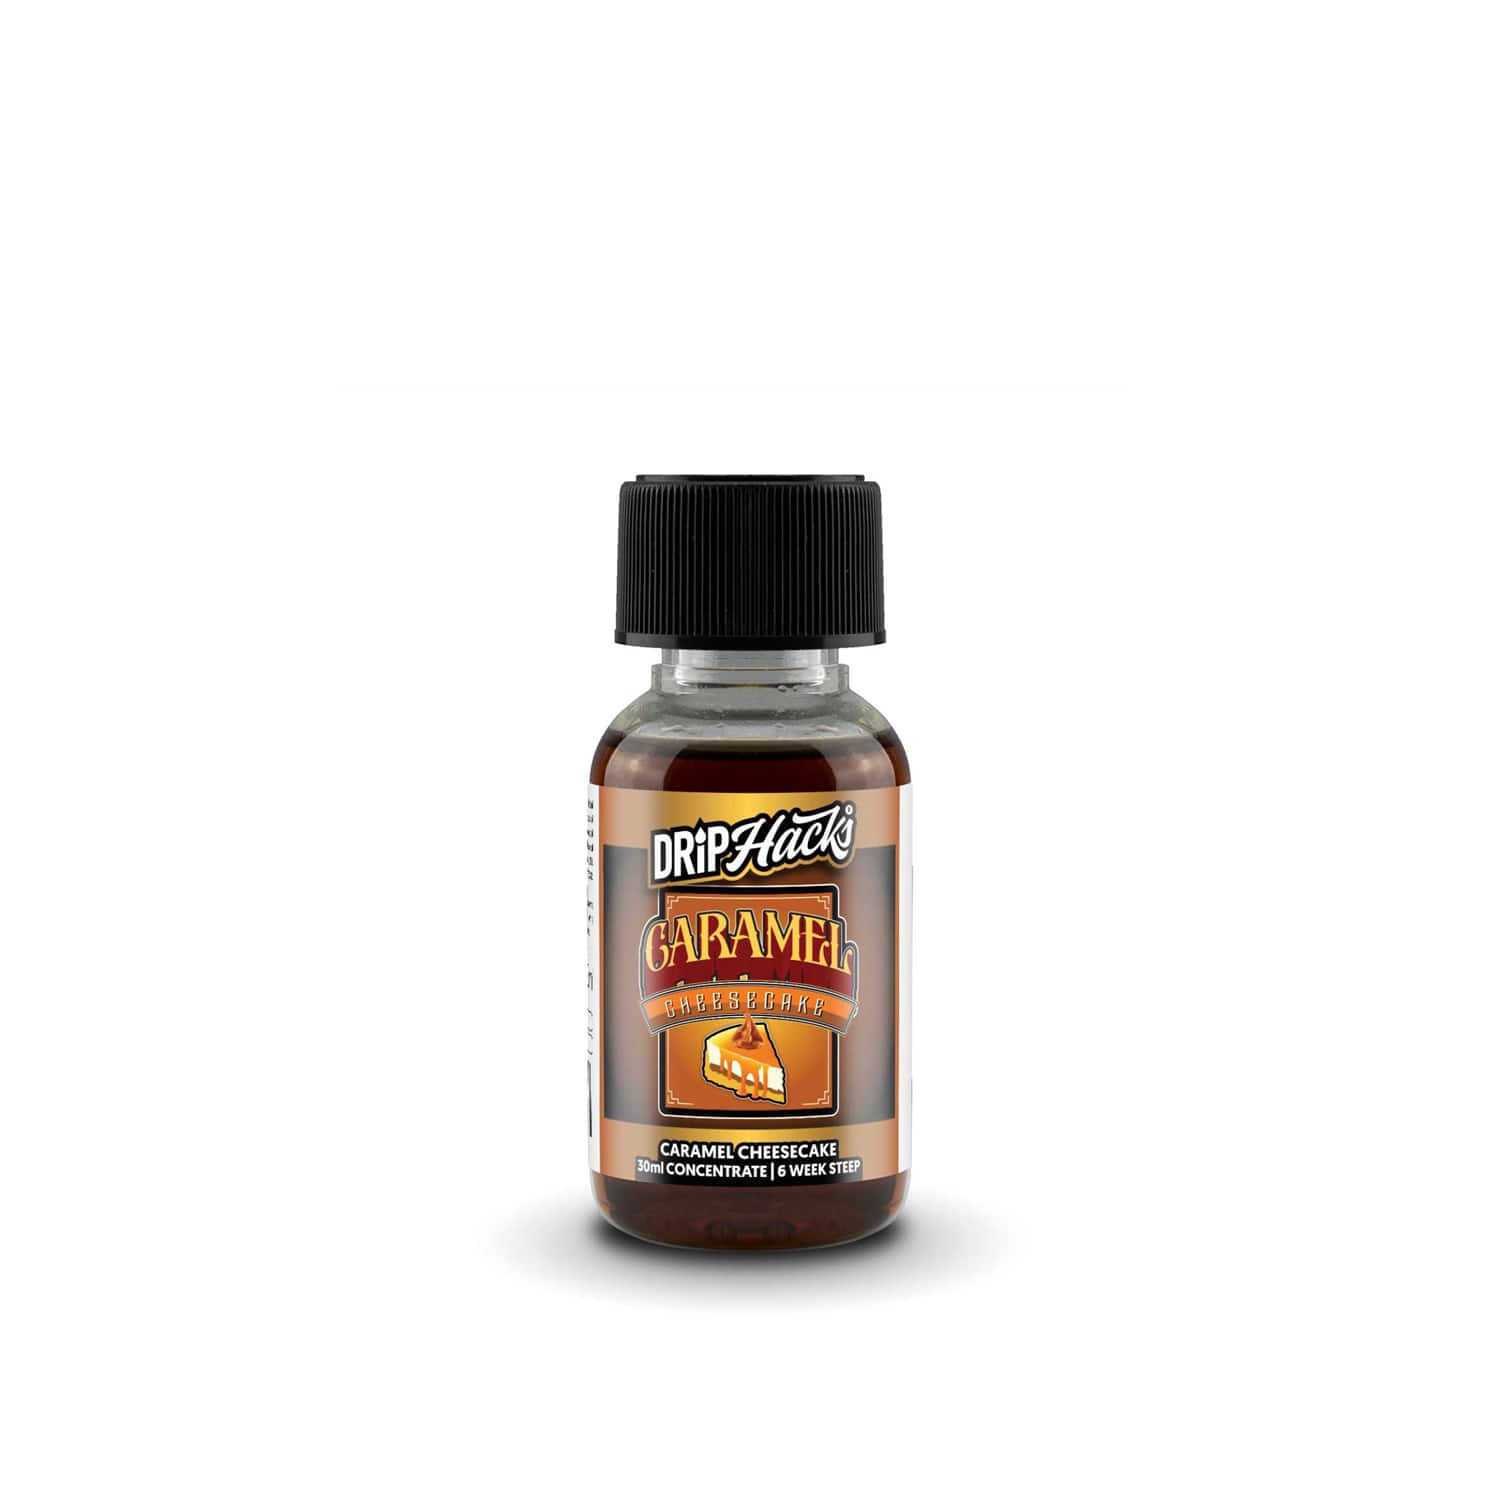 Caramel Cheesecake Flavour Concentrate by Drip Hacks